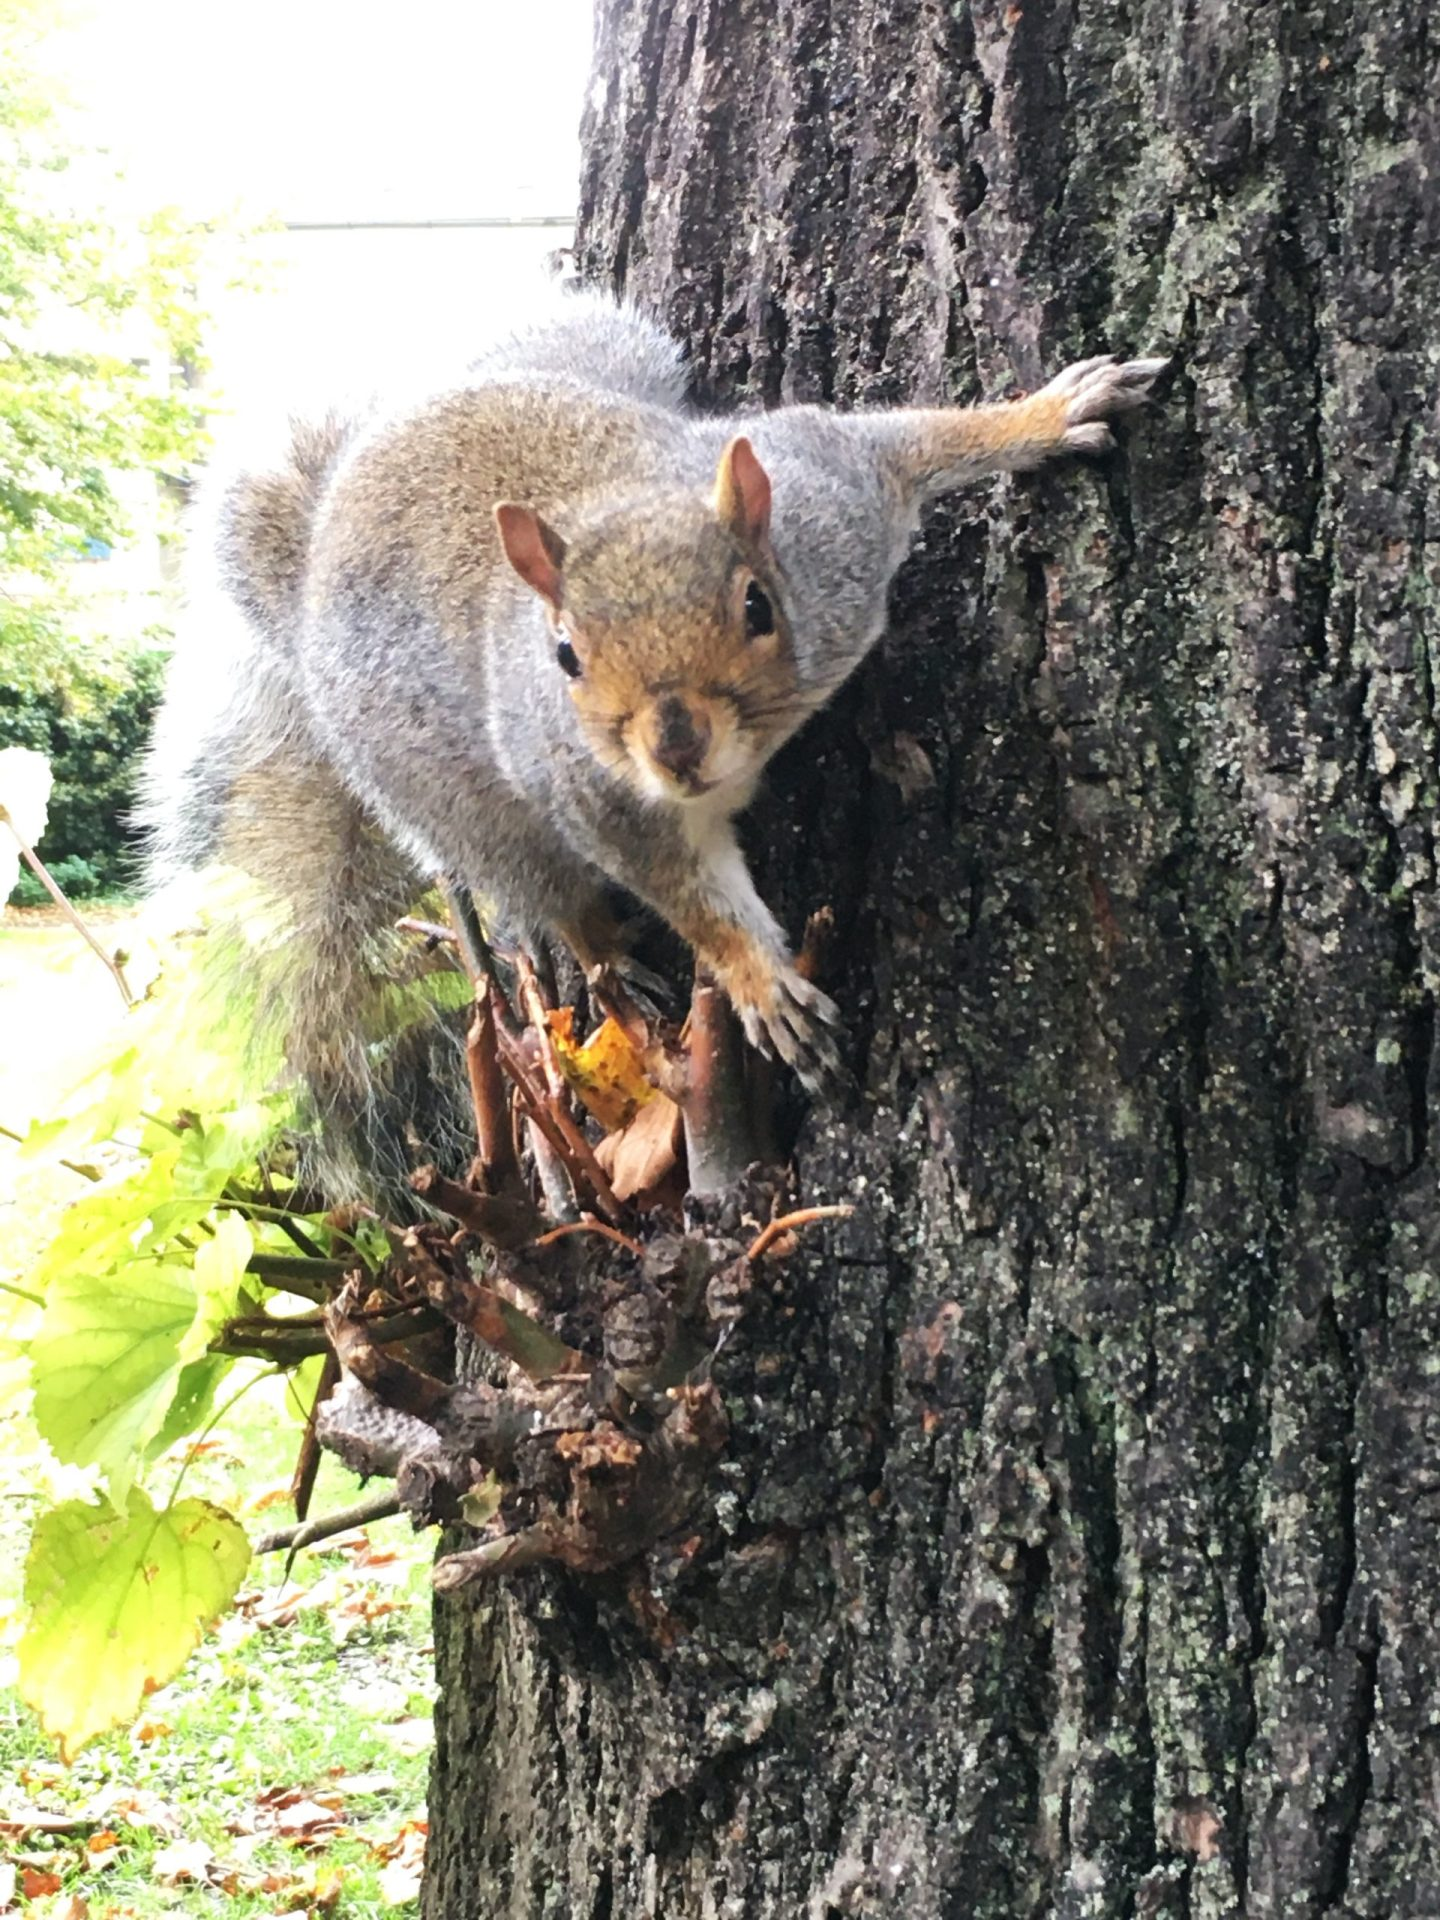 Close-up photograph of a squirrel climbing a tree, looking into the lens of the camera.